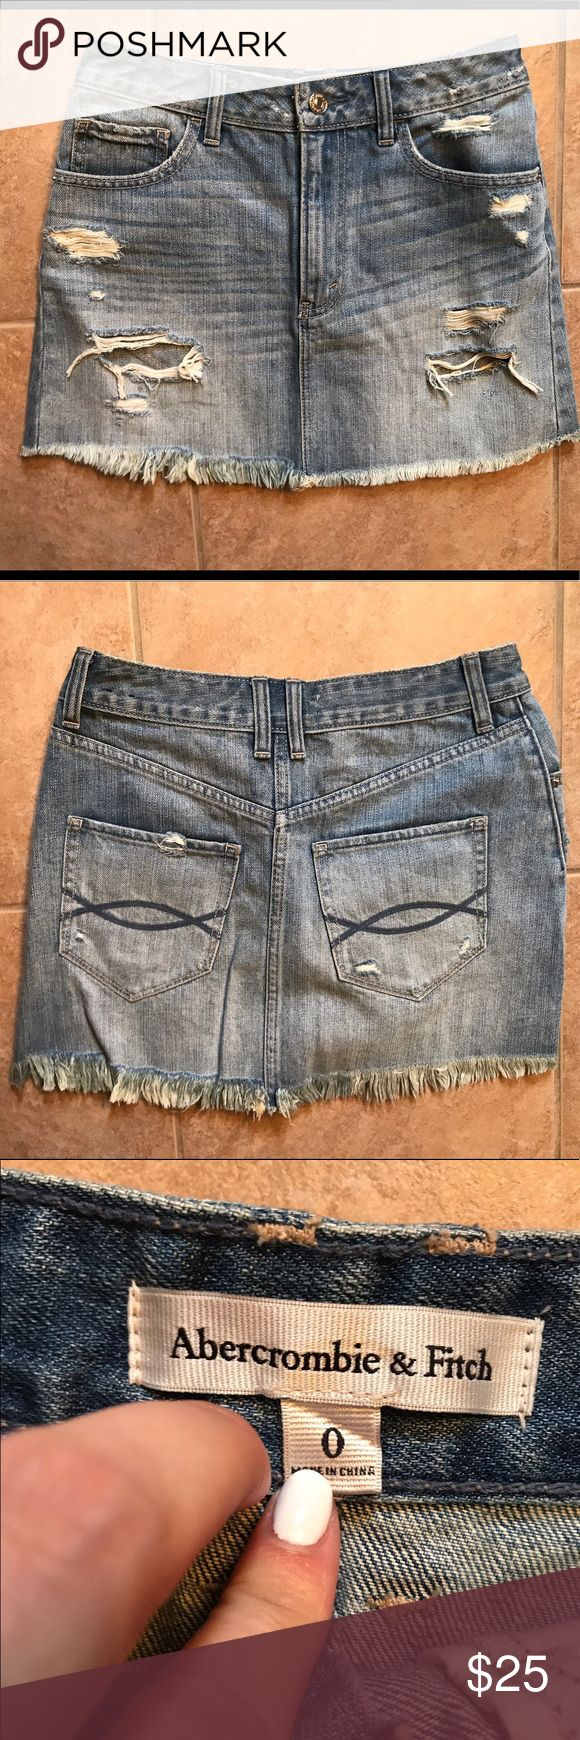 Abercrombie and Fitch Denim Skirt Abercrombie and Fitch Destroy Wash Denim Skirt. Size 0. Never Worn. Abercrombie & Fitch Skirts